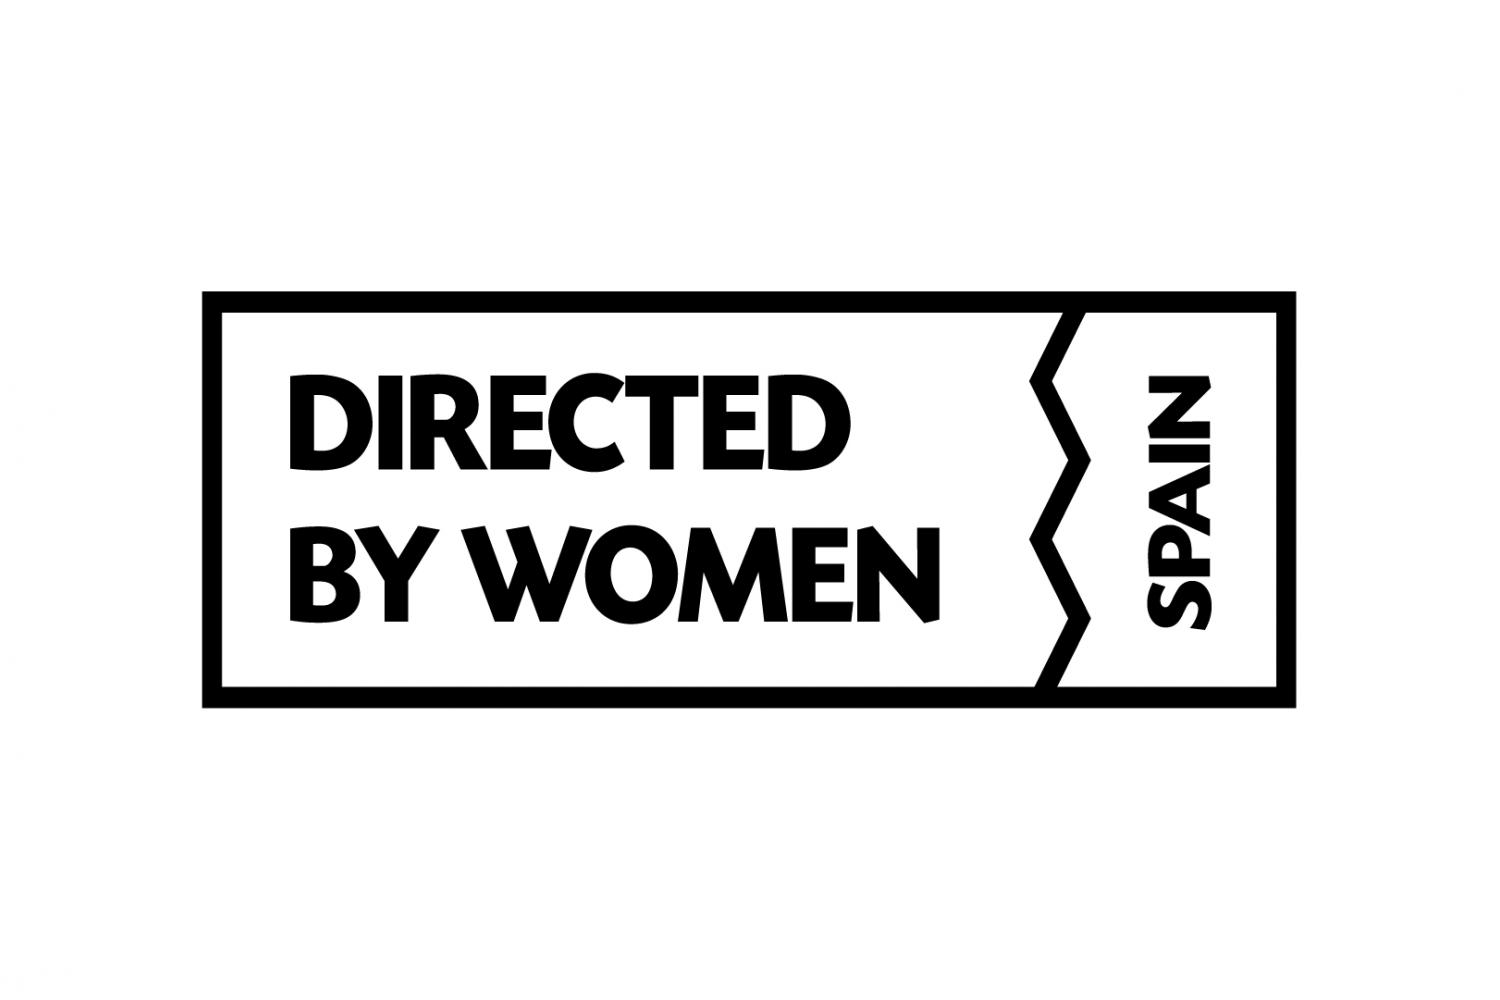 Logo de Directed by women